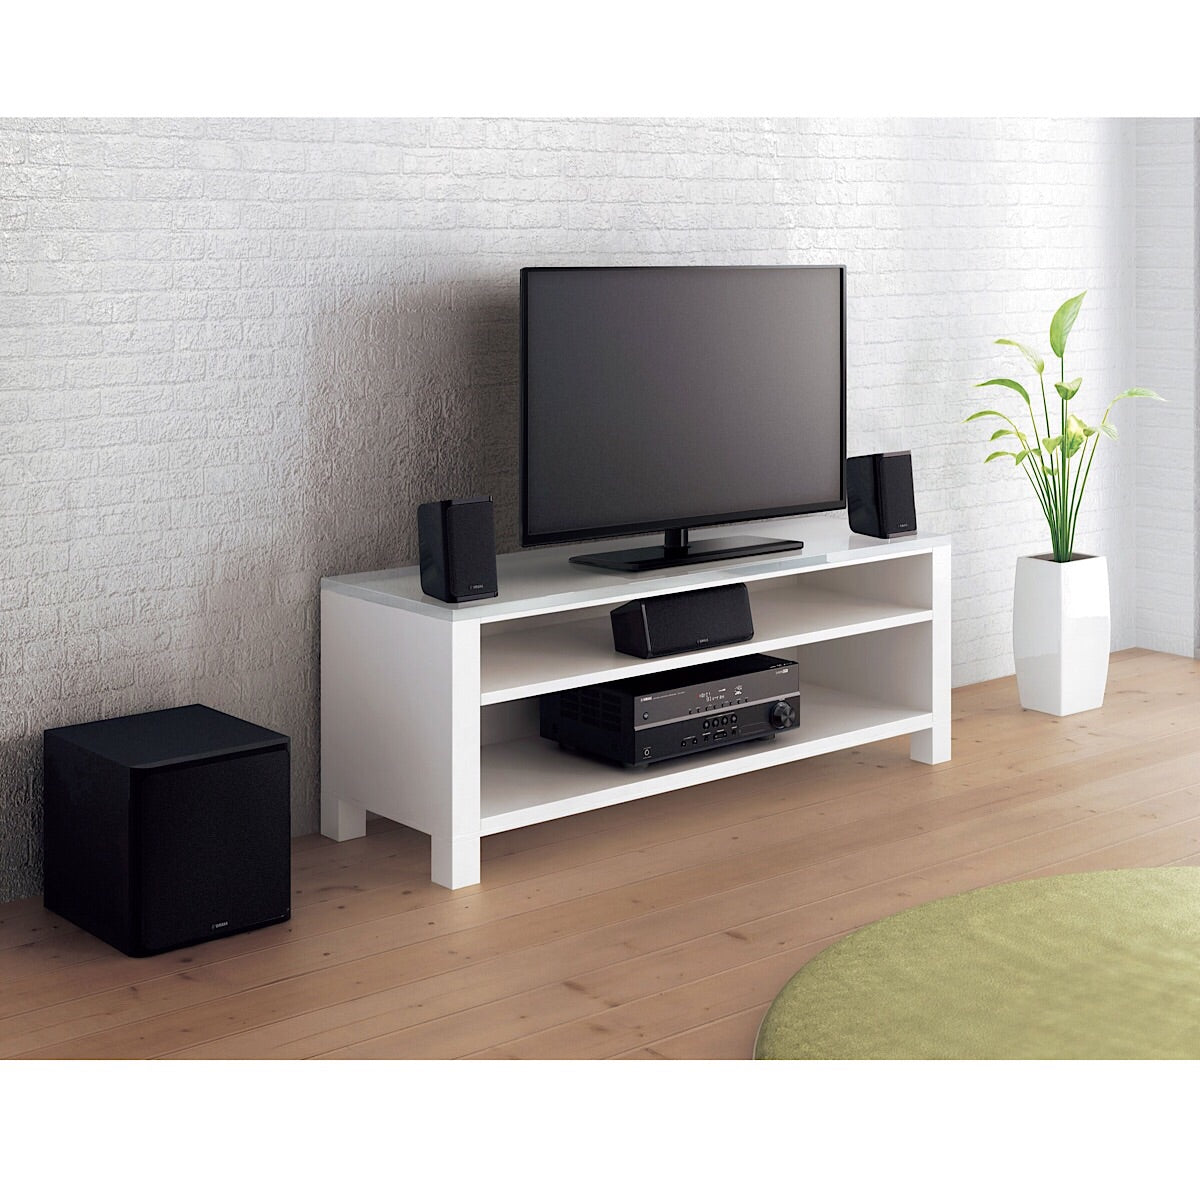 Yamaha YHT-1840 - Home Theatre System, Yamaha, Home Theatre in a box - AVStore.in